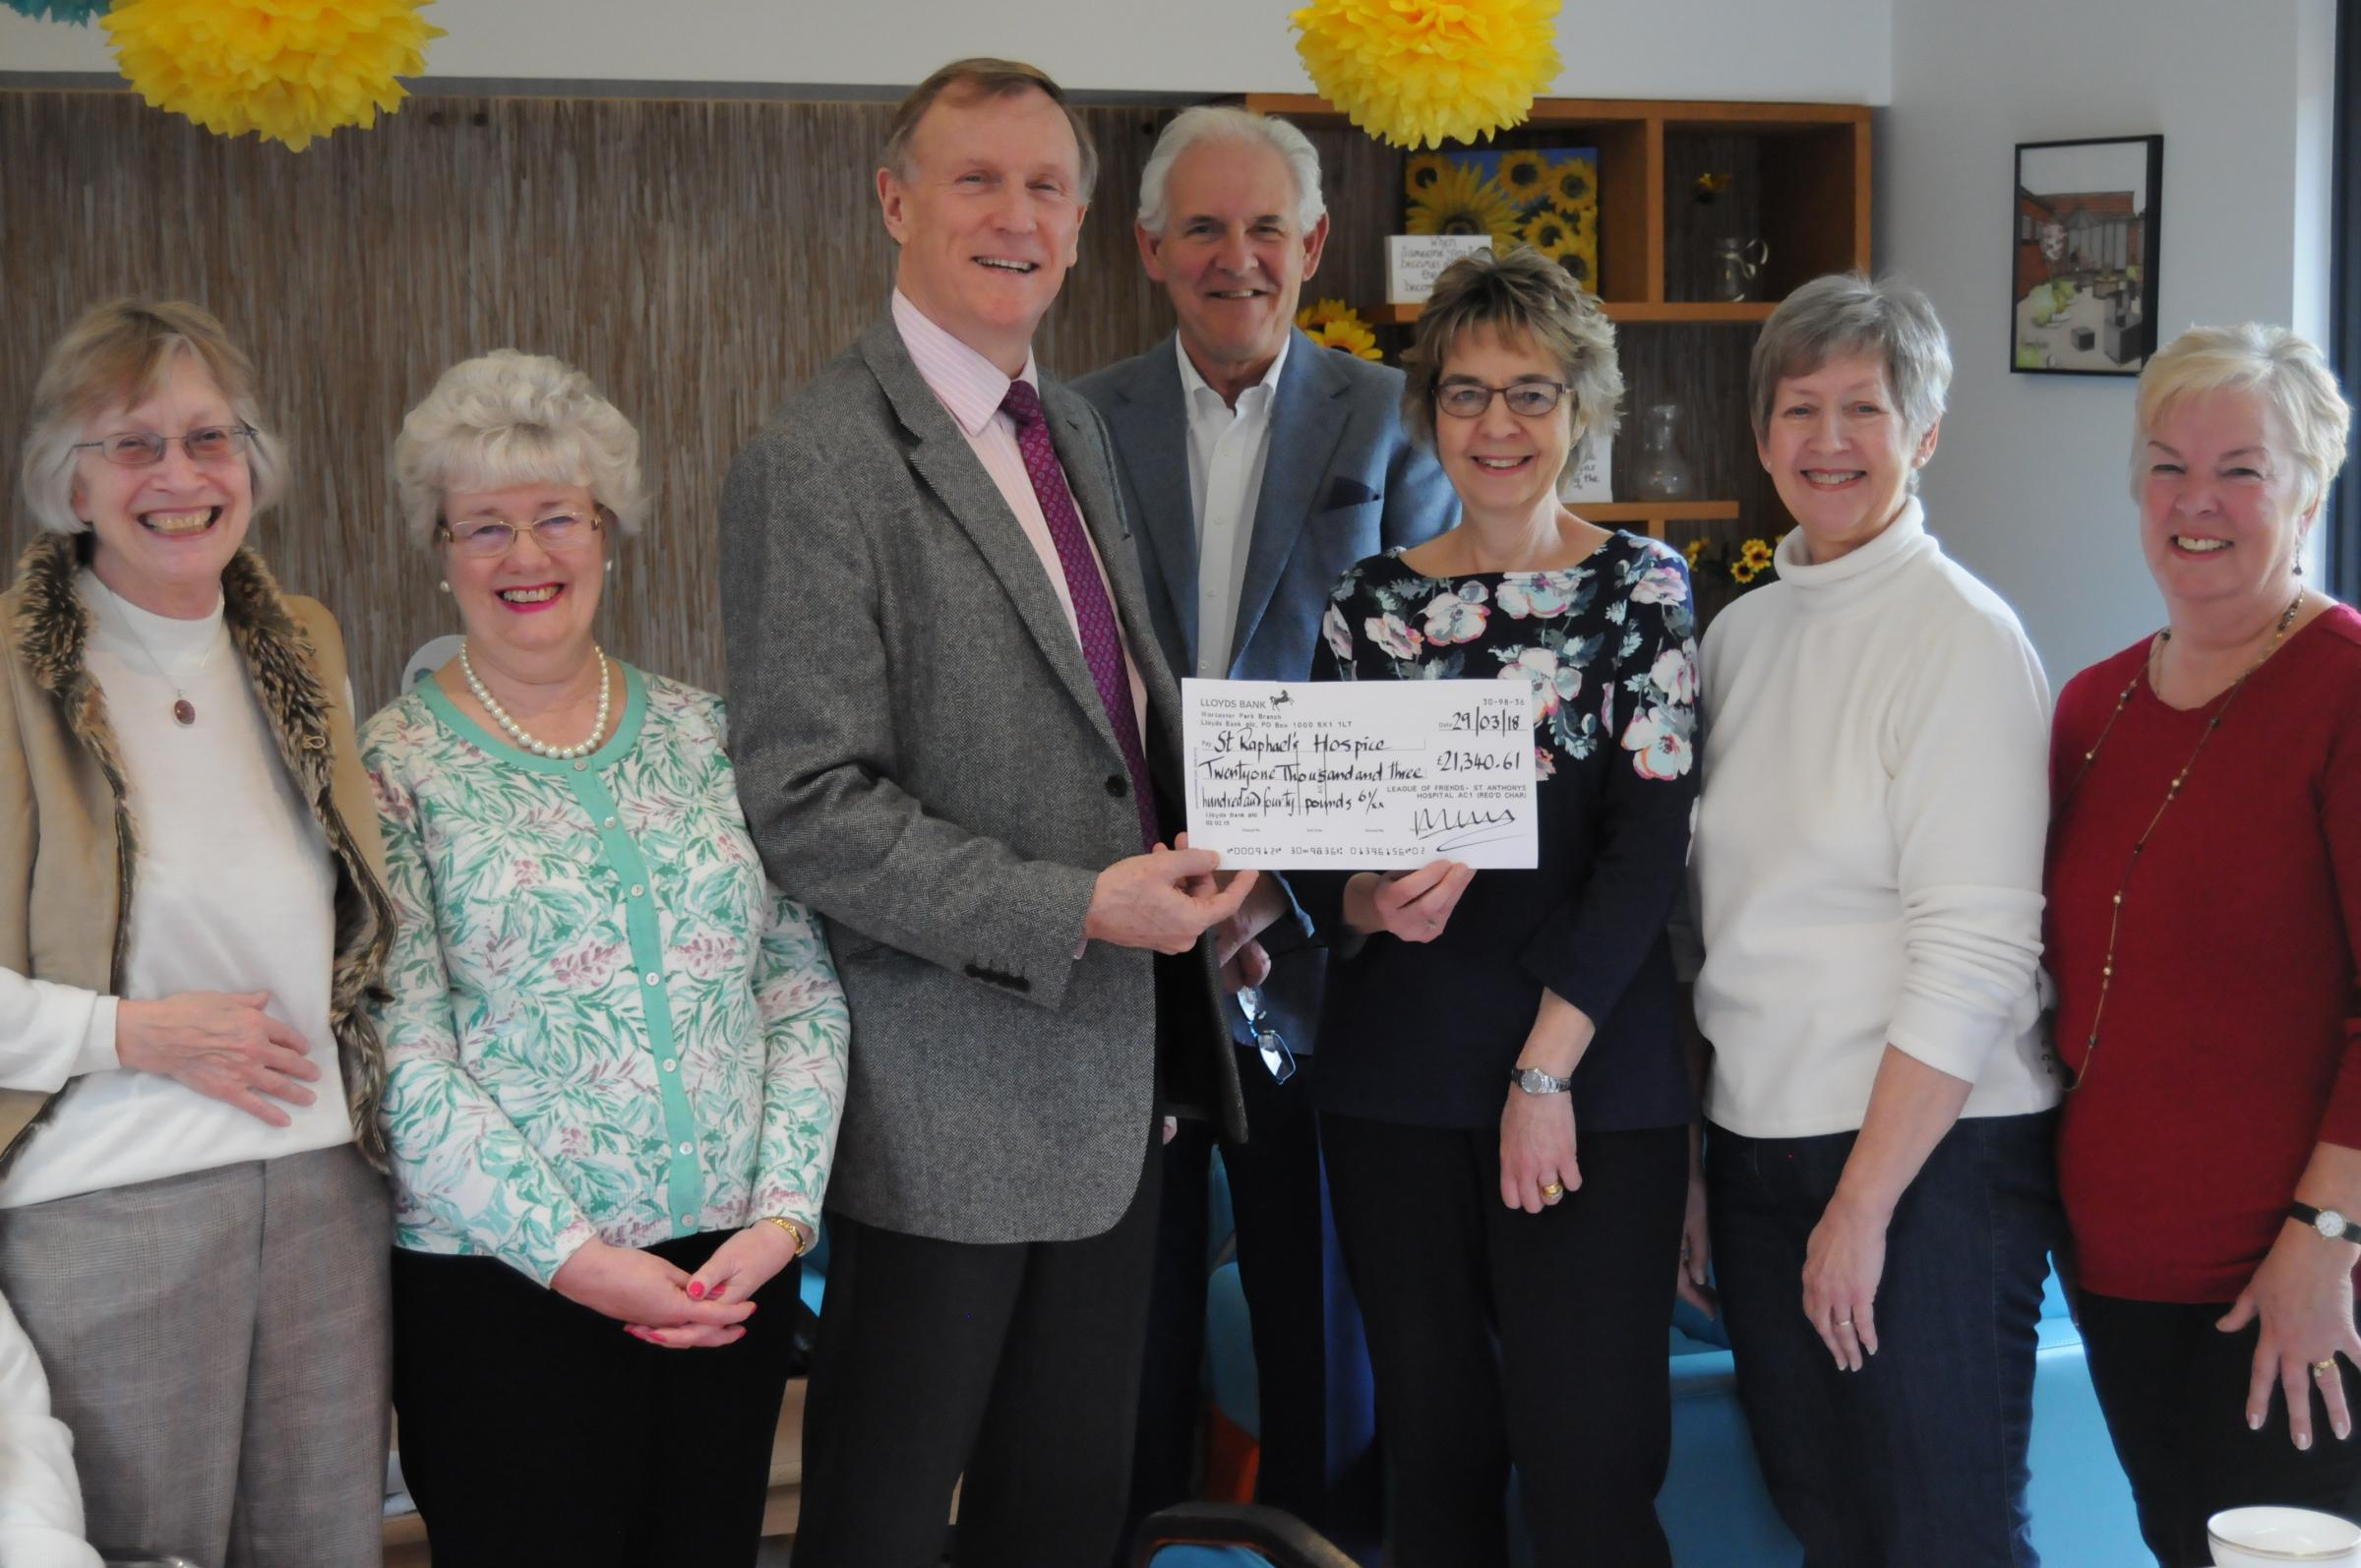 St Raphael's Hospice chief executive (third from left) with chair of trustees Sue Poulter (third from right) with members from left to right - Raye-Sheerman Chase, Diane Robinson, Paul Sonnex, Judith Capper-Allen, and Lyn Lovelock